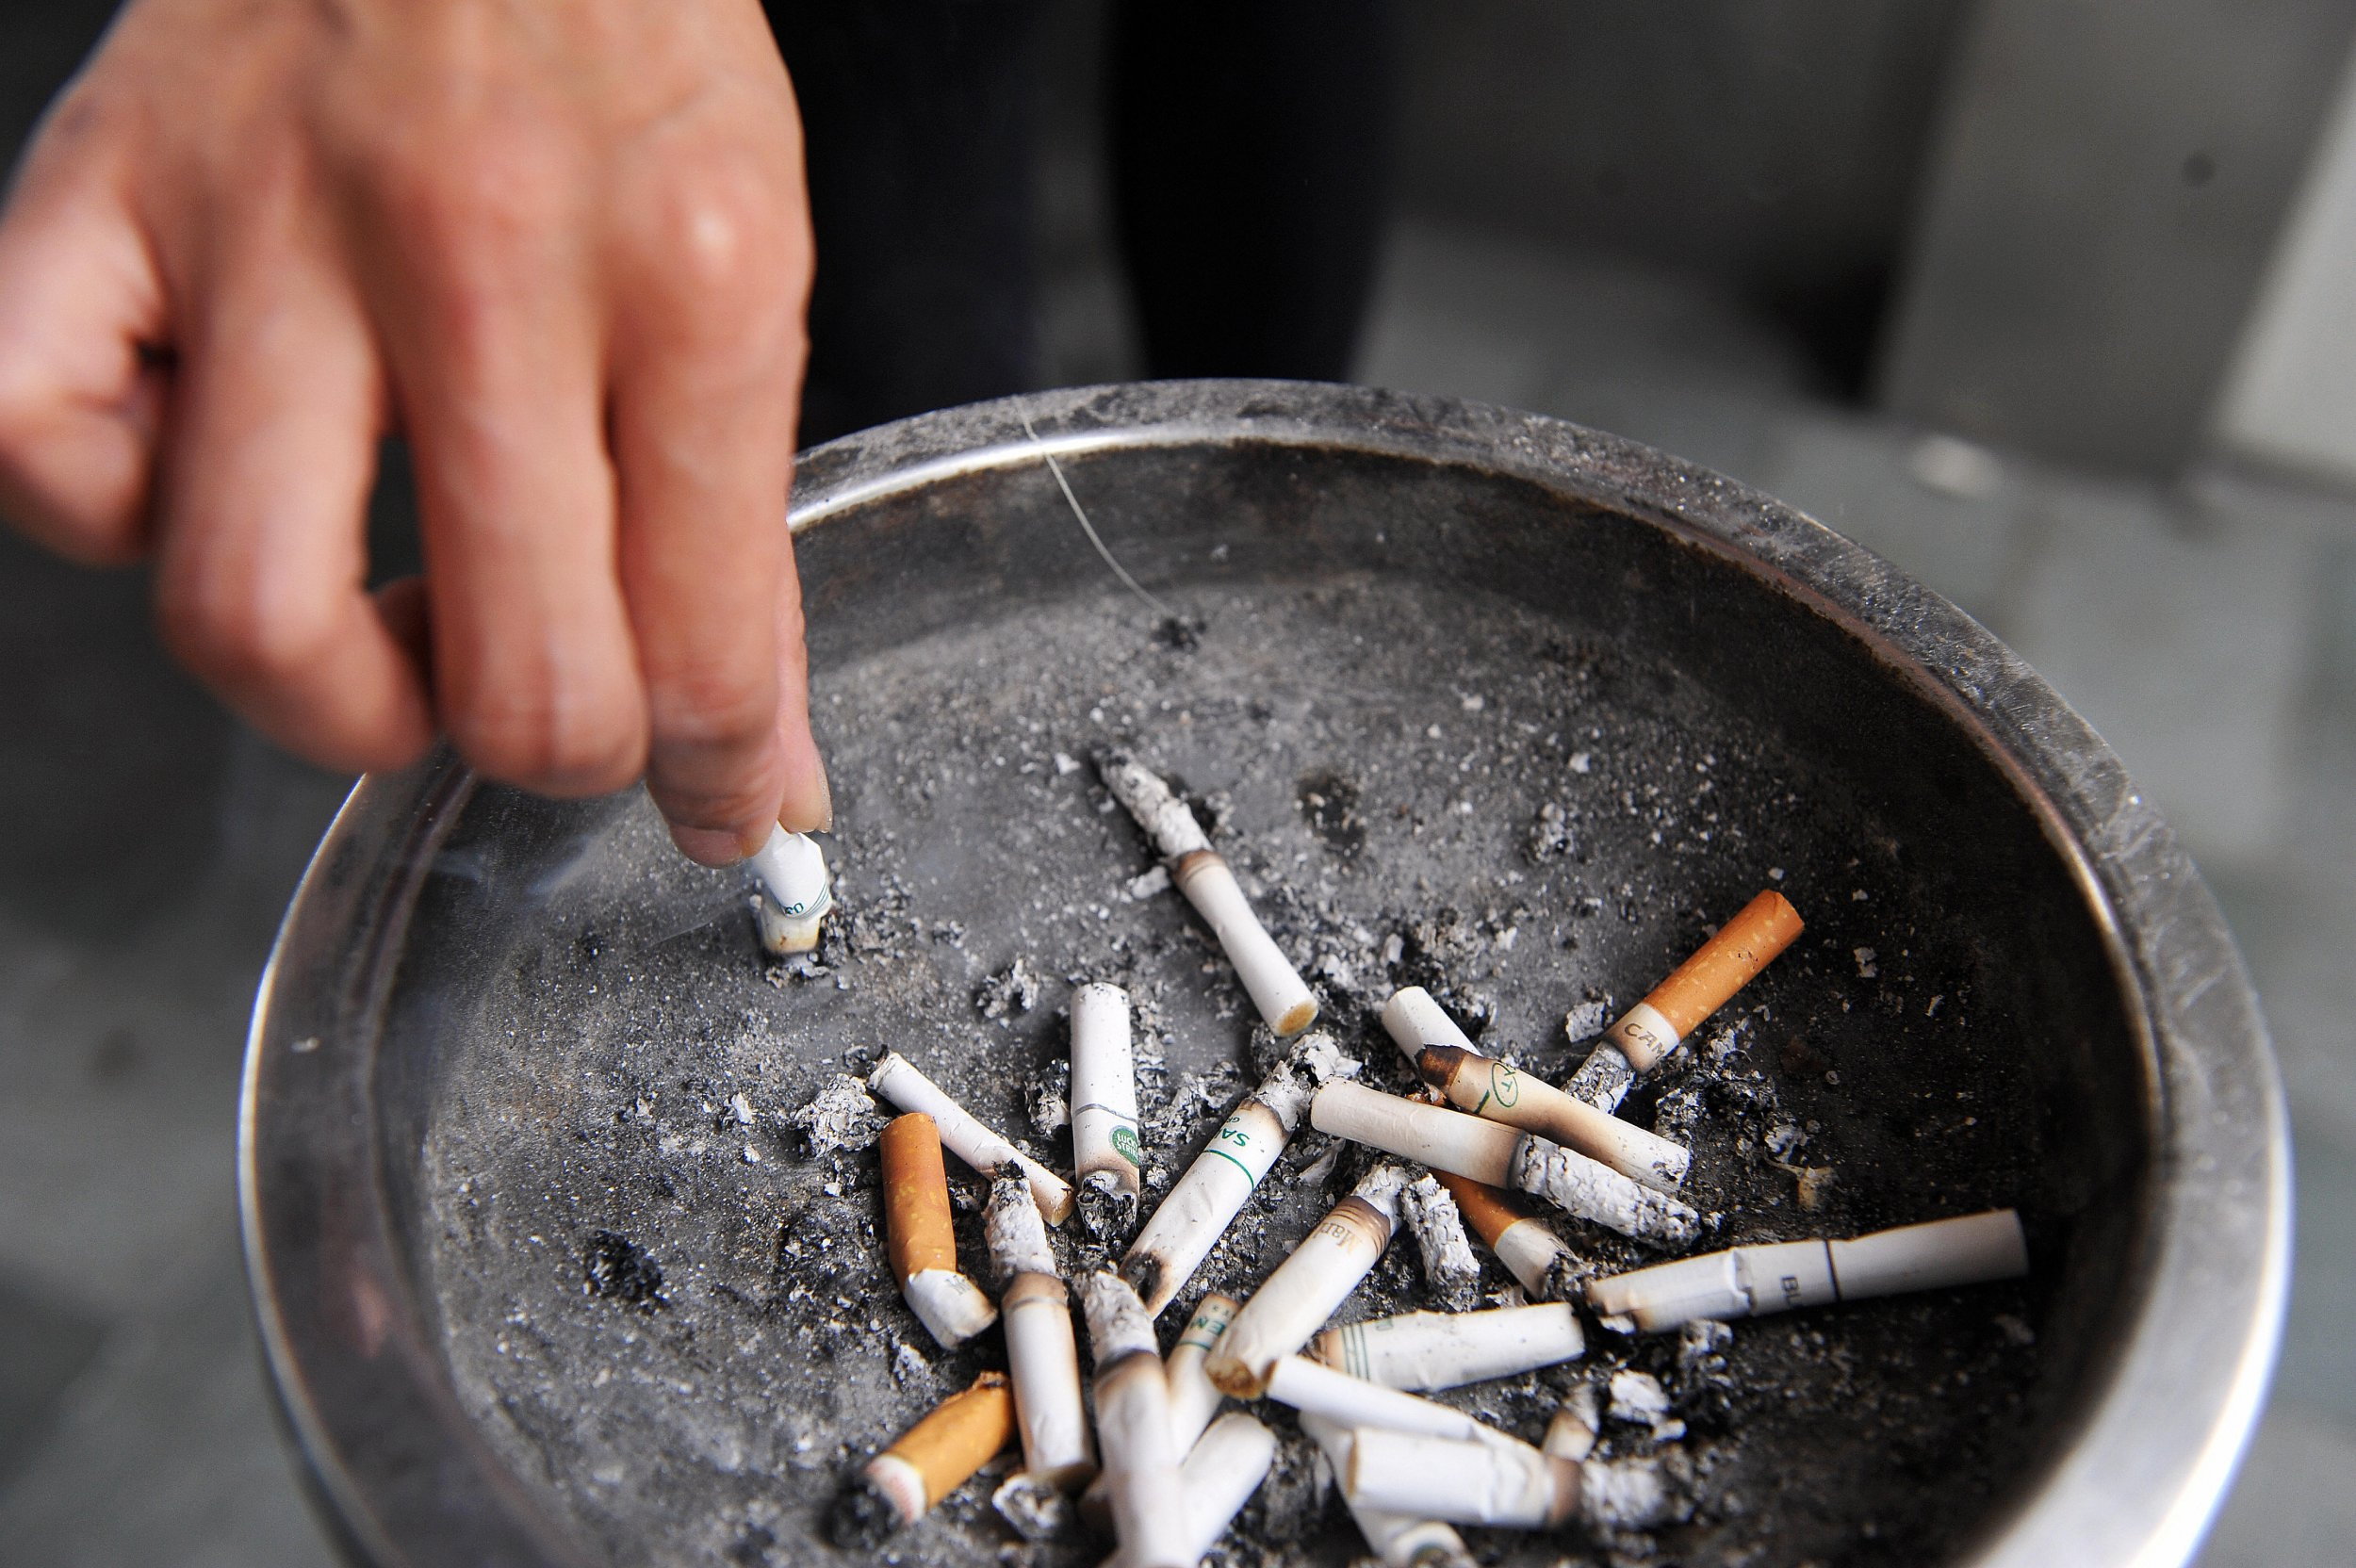 Secondhand Smoke Might Triple Childs >> Hearing Loss In Children Linked To Secondhand Smoke Exposure New